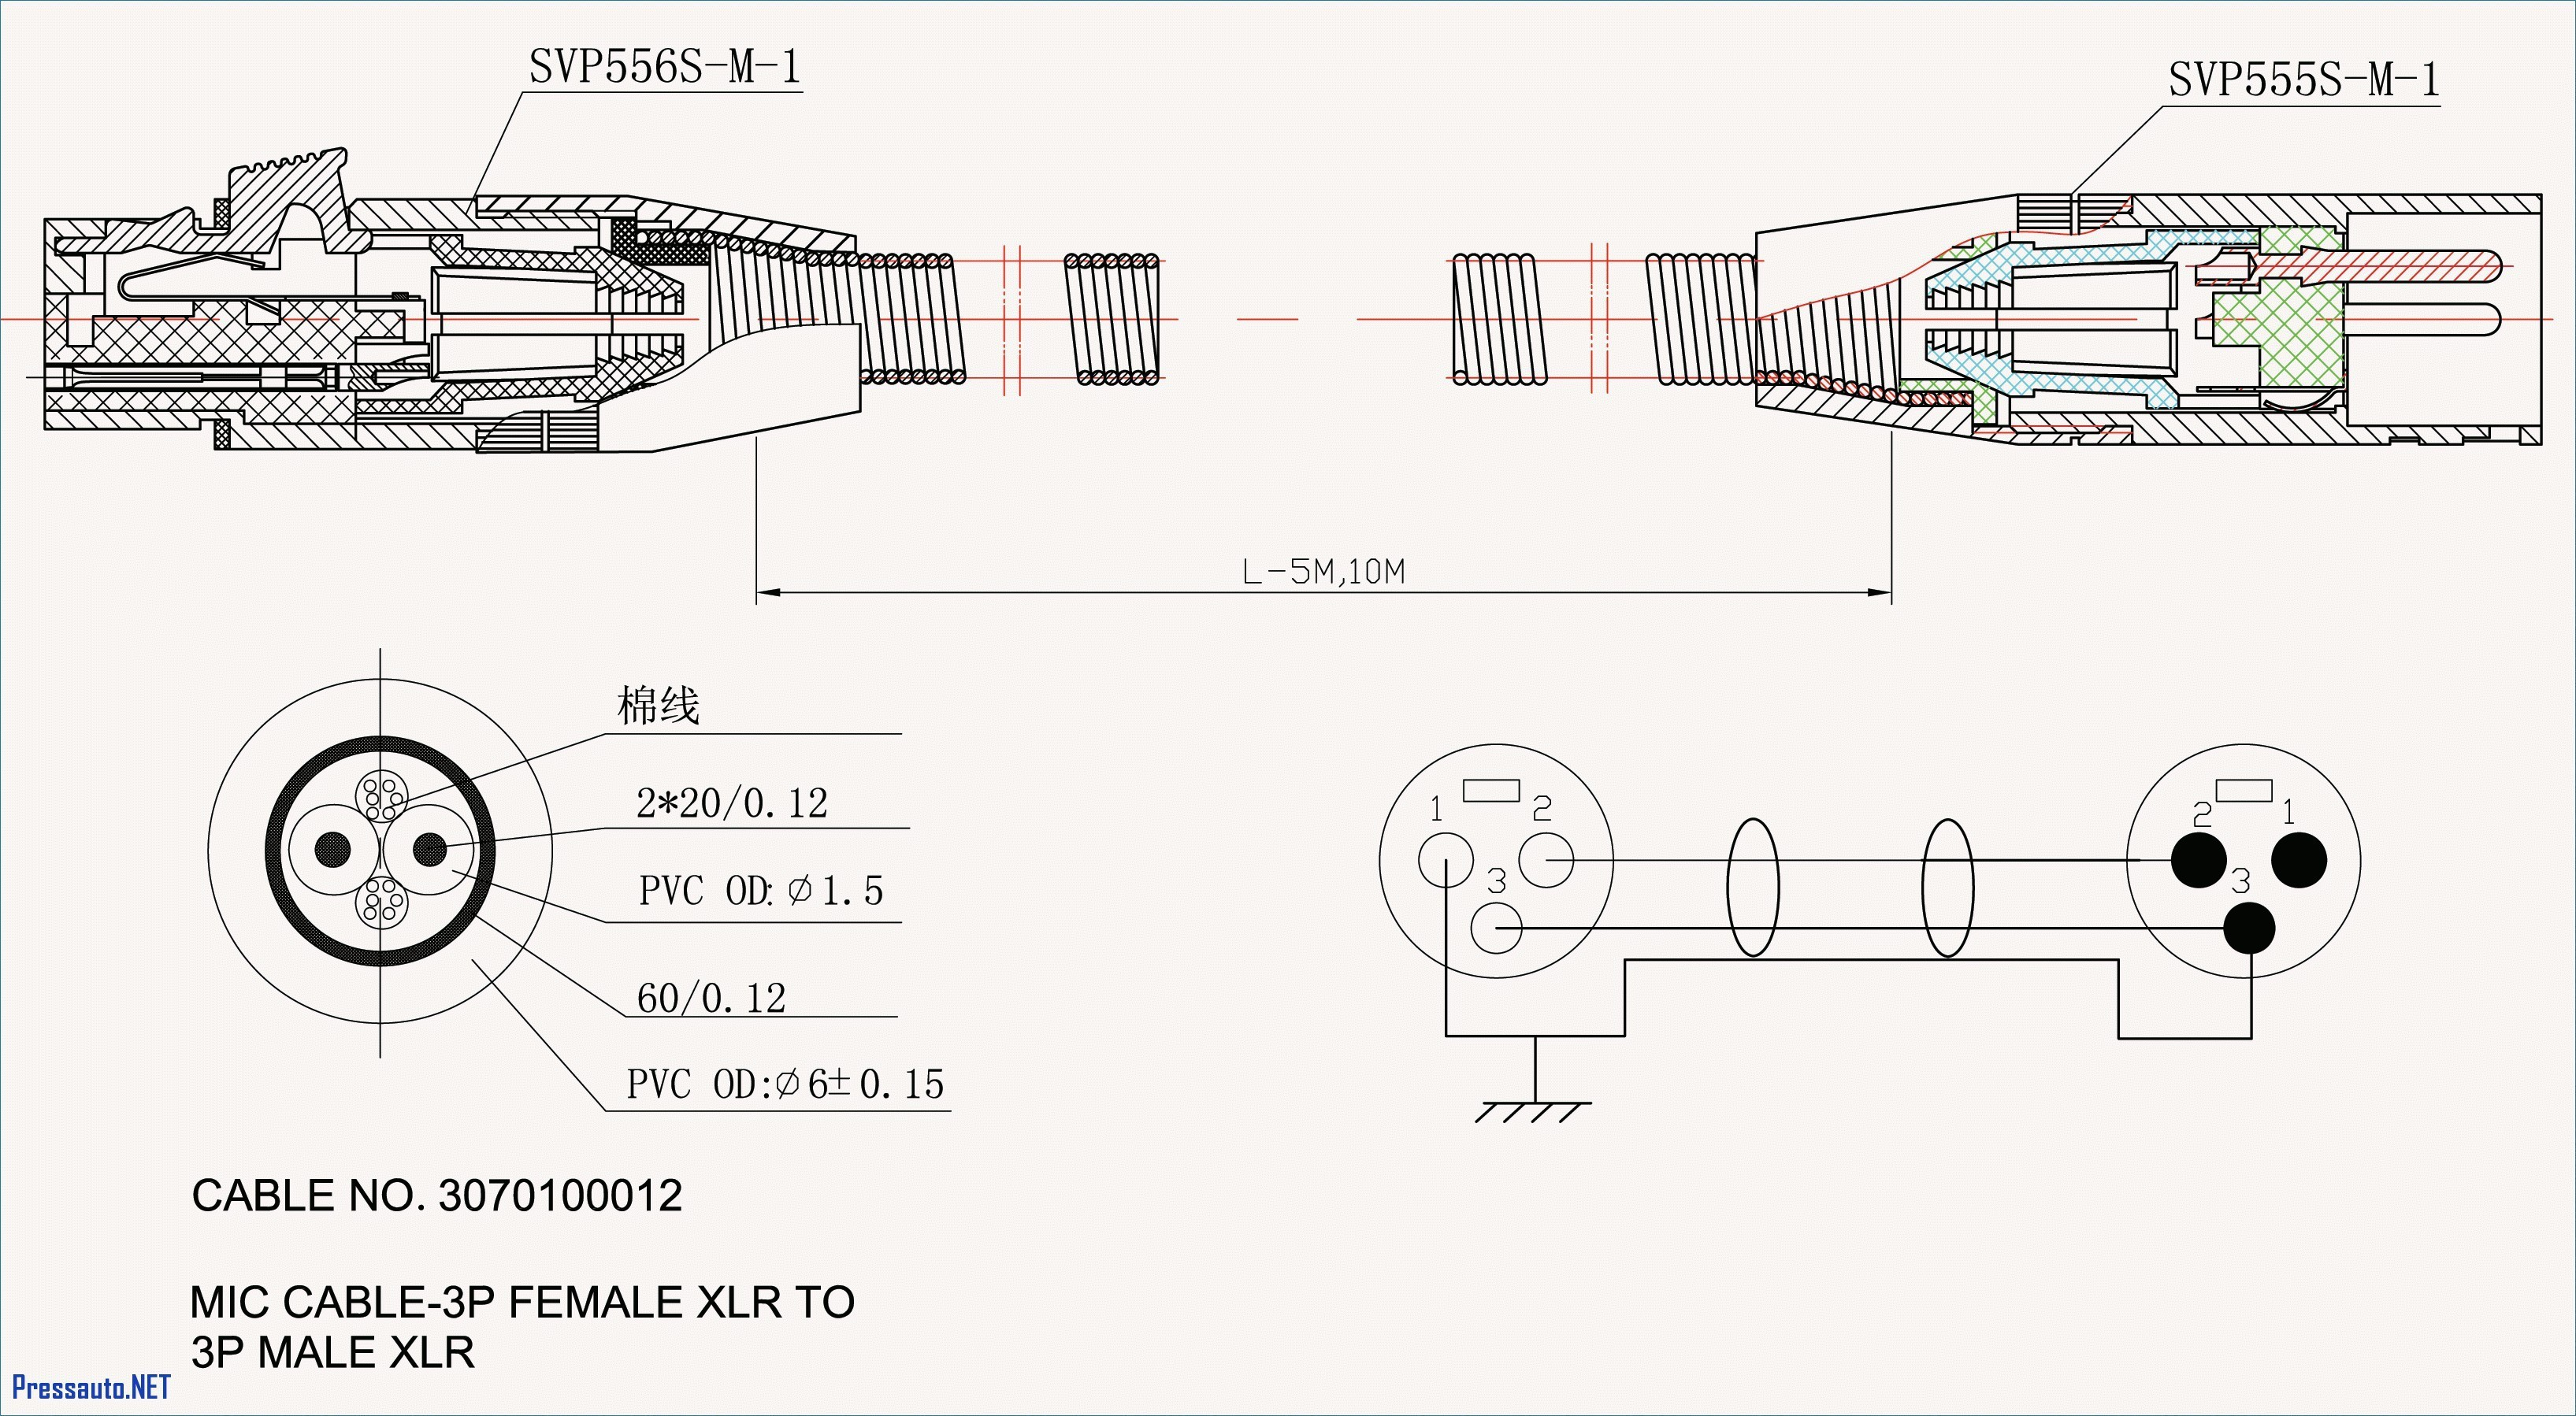 Alternator Welder Wiring Diagram Save Sawafuji Alternator Wiring Diagram \u0026 Hino Alternator Wiring Diagram